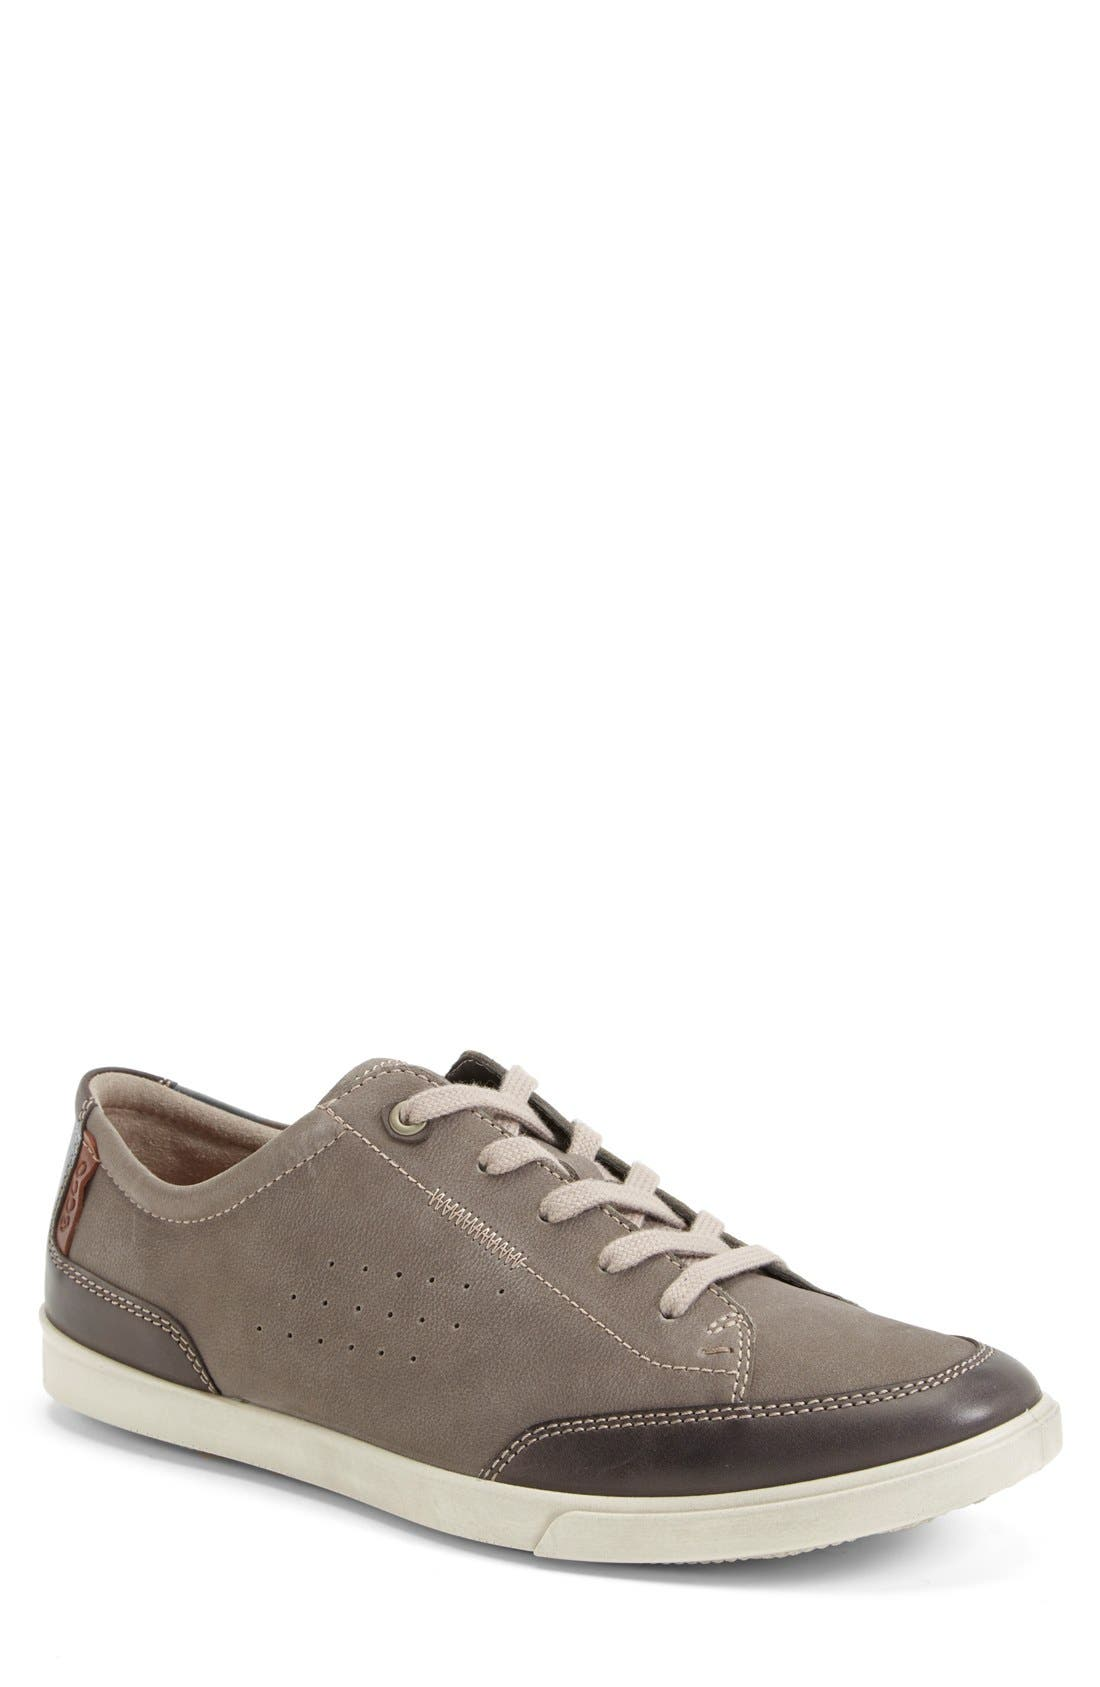 Alternate Image 1 Selected - ECCO 'Collin' Sneaker (Men)